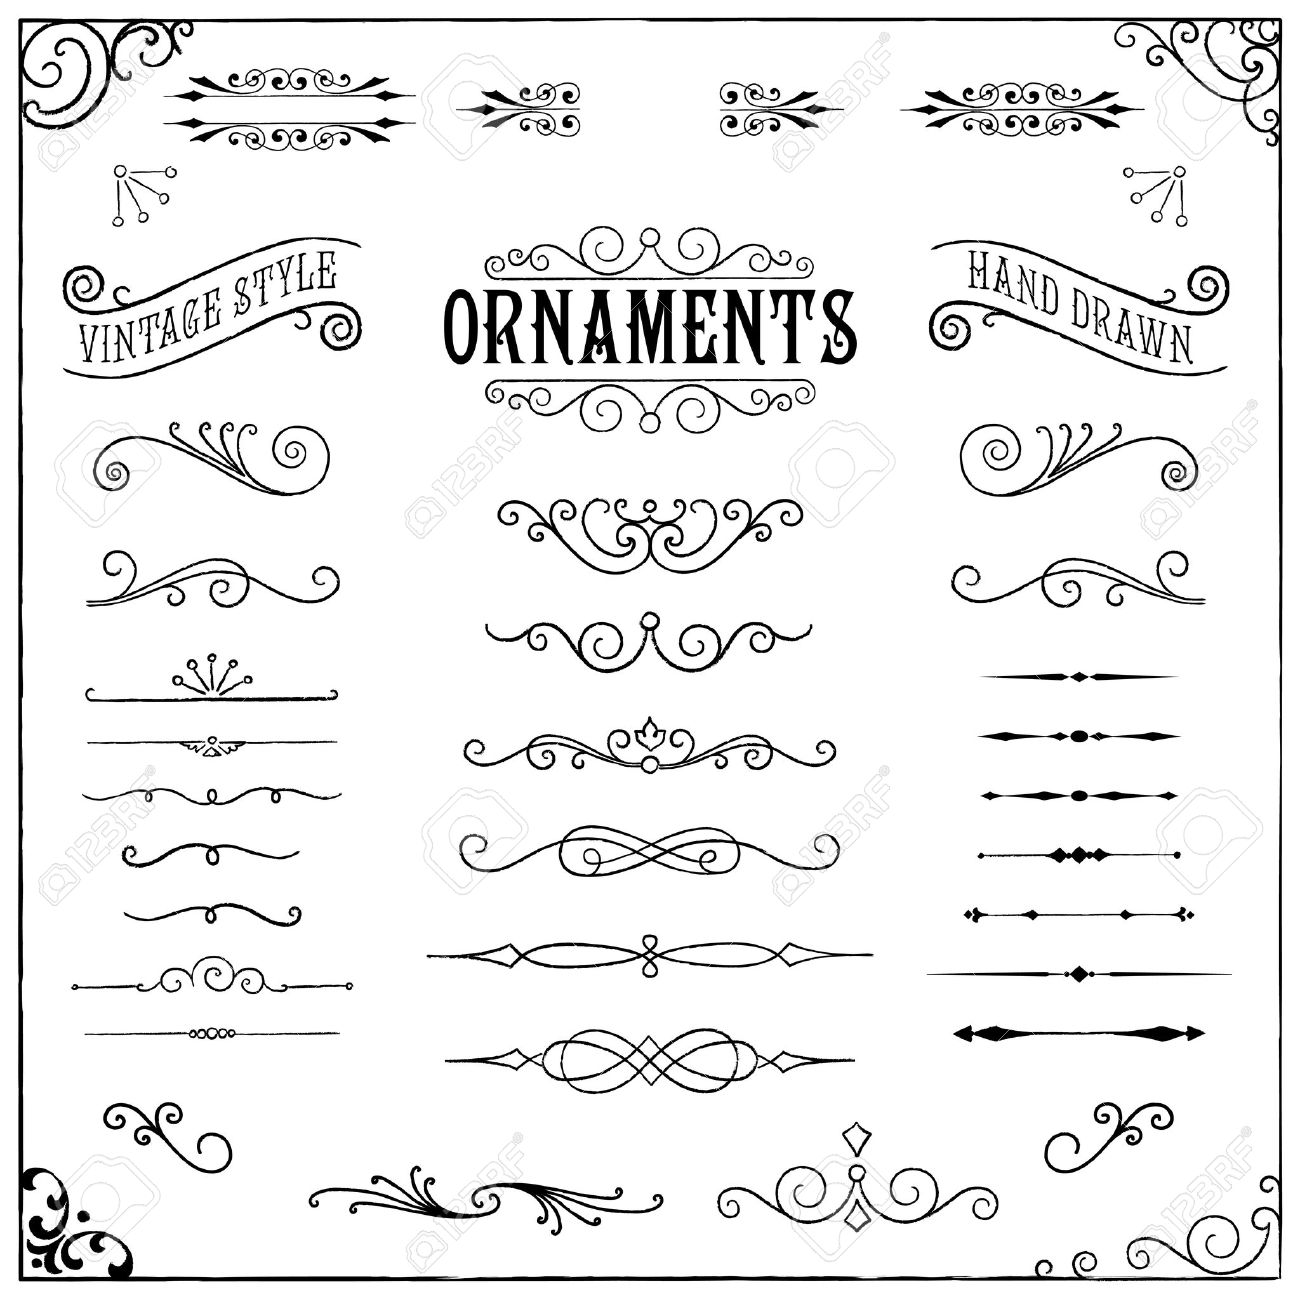 Vintage Ornaments - Collection of hand drawn vintage ornaments Stock Vector - 39086942